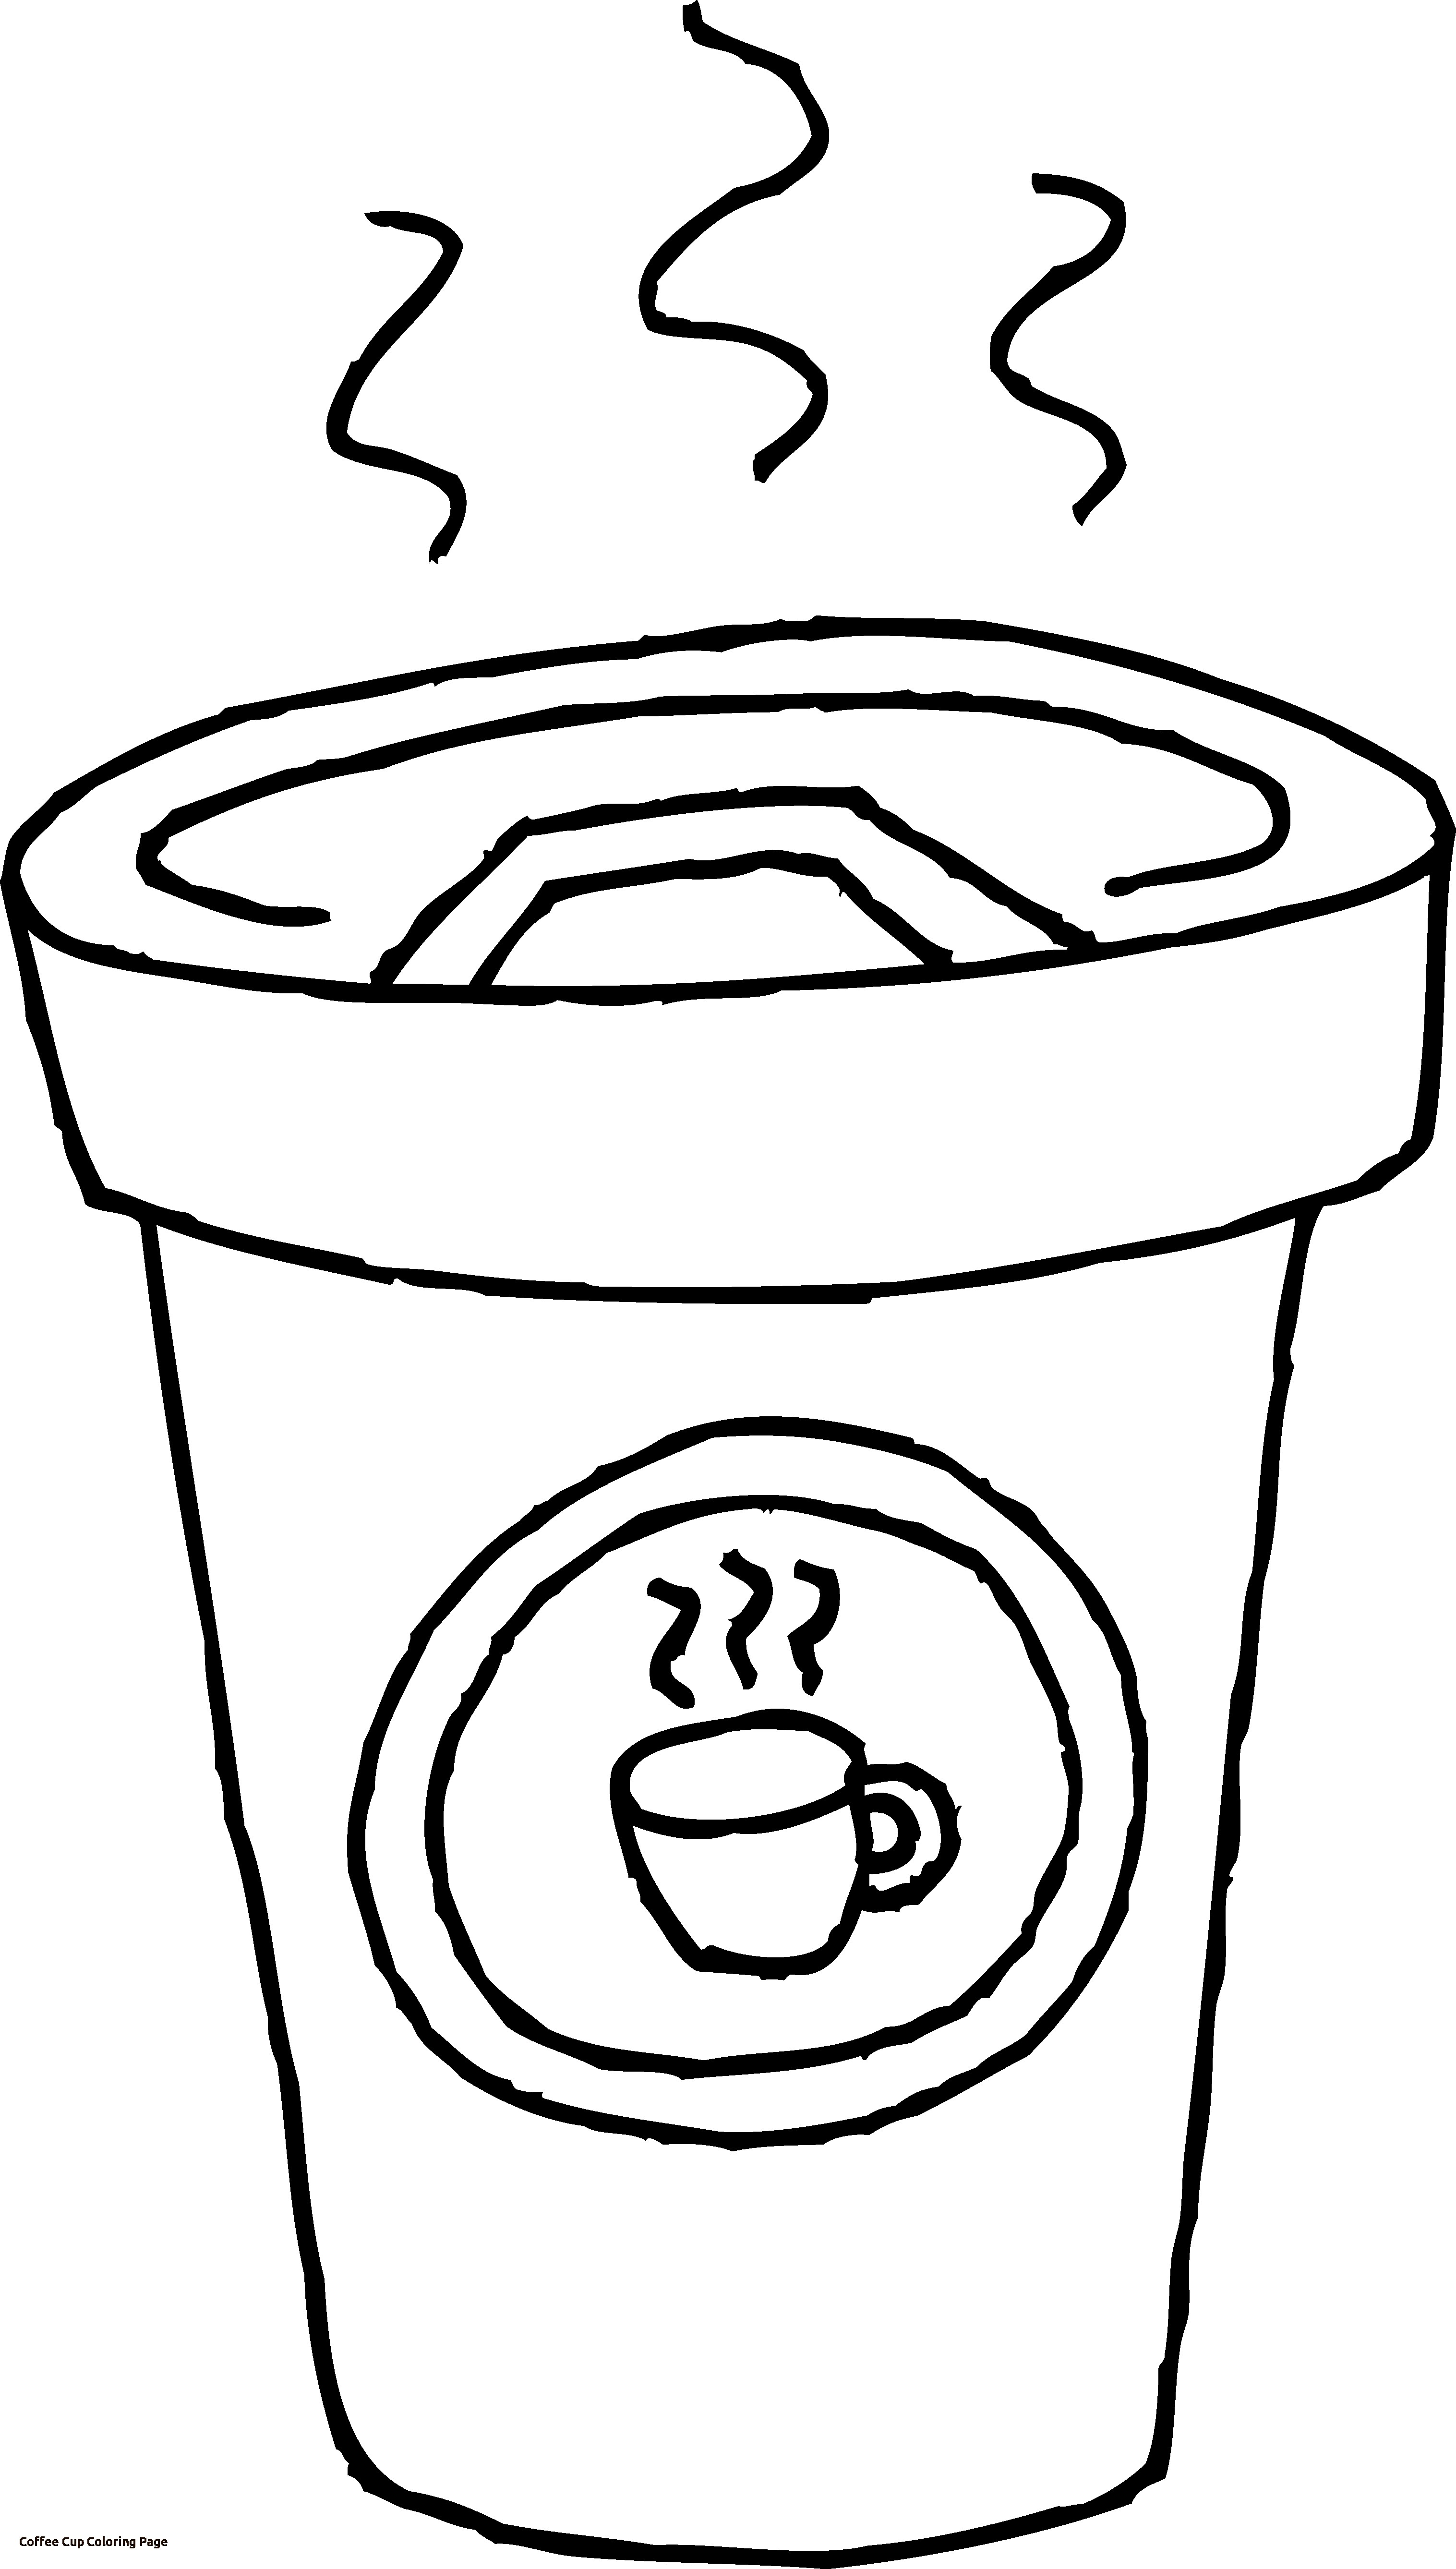 3033x5351 Coffee Printable Coloring Pages For Cup Page Amazing Mug